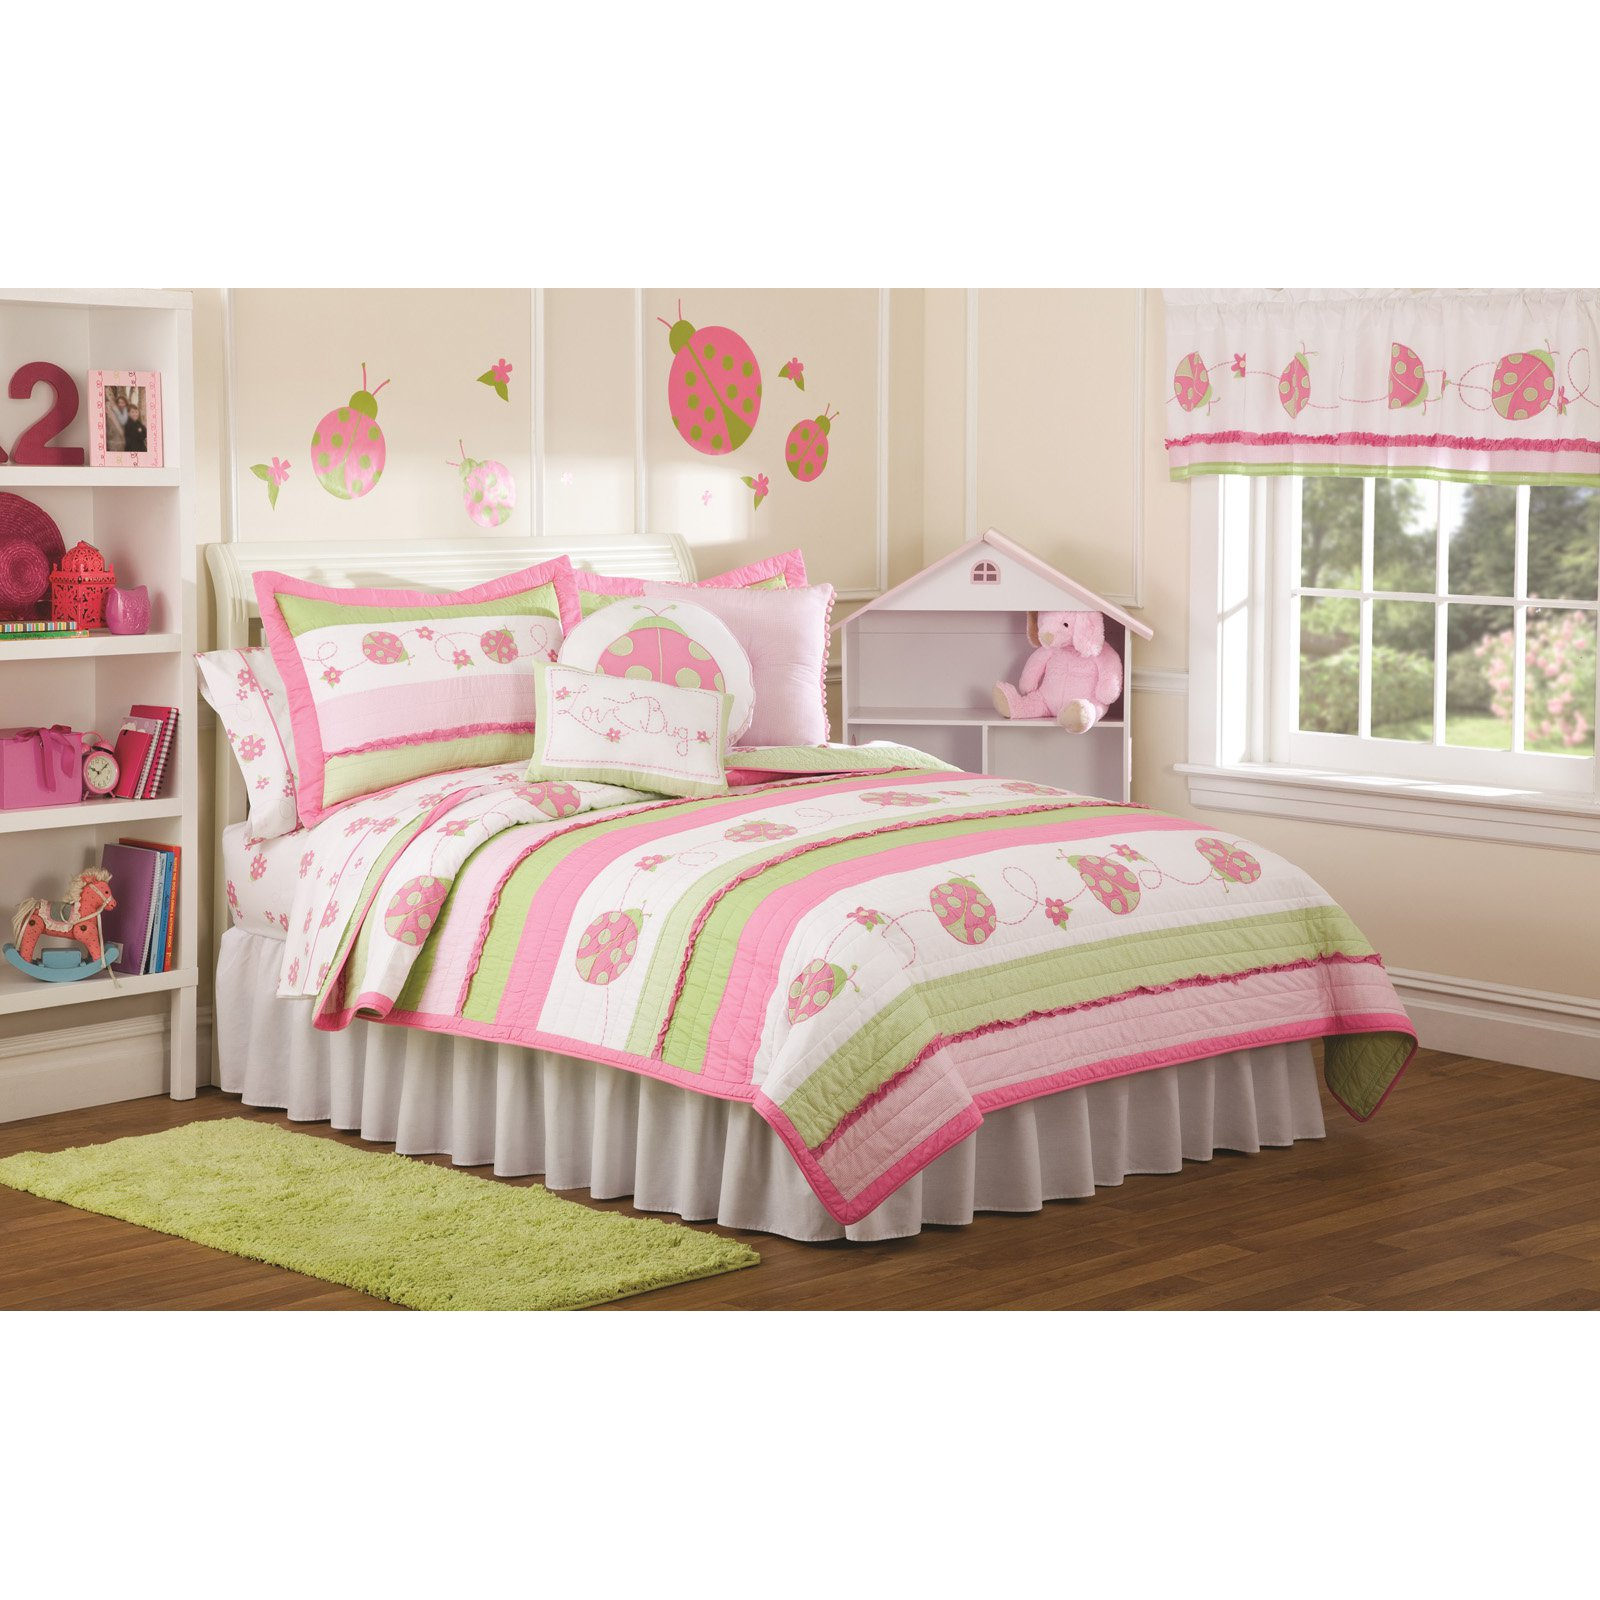 3-Pc Bright Band Full and Queen Quilt Set